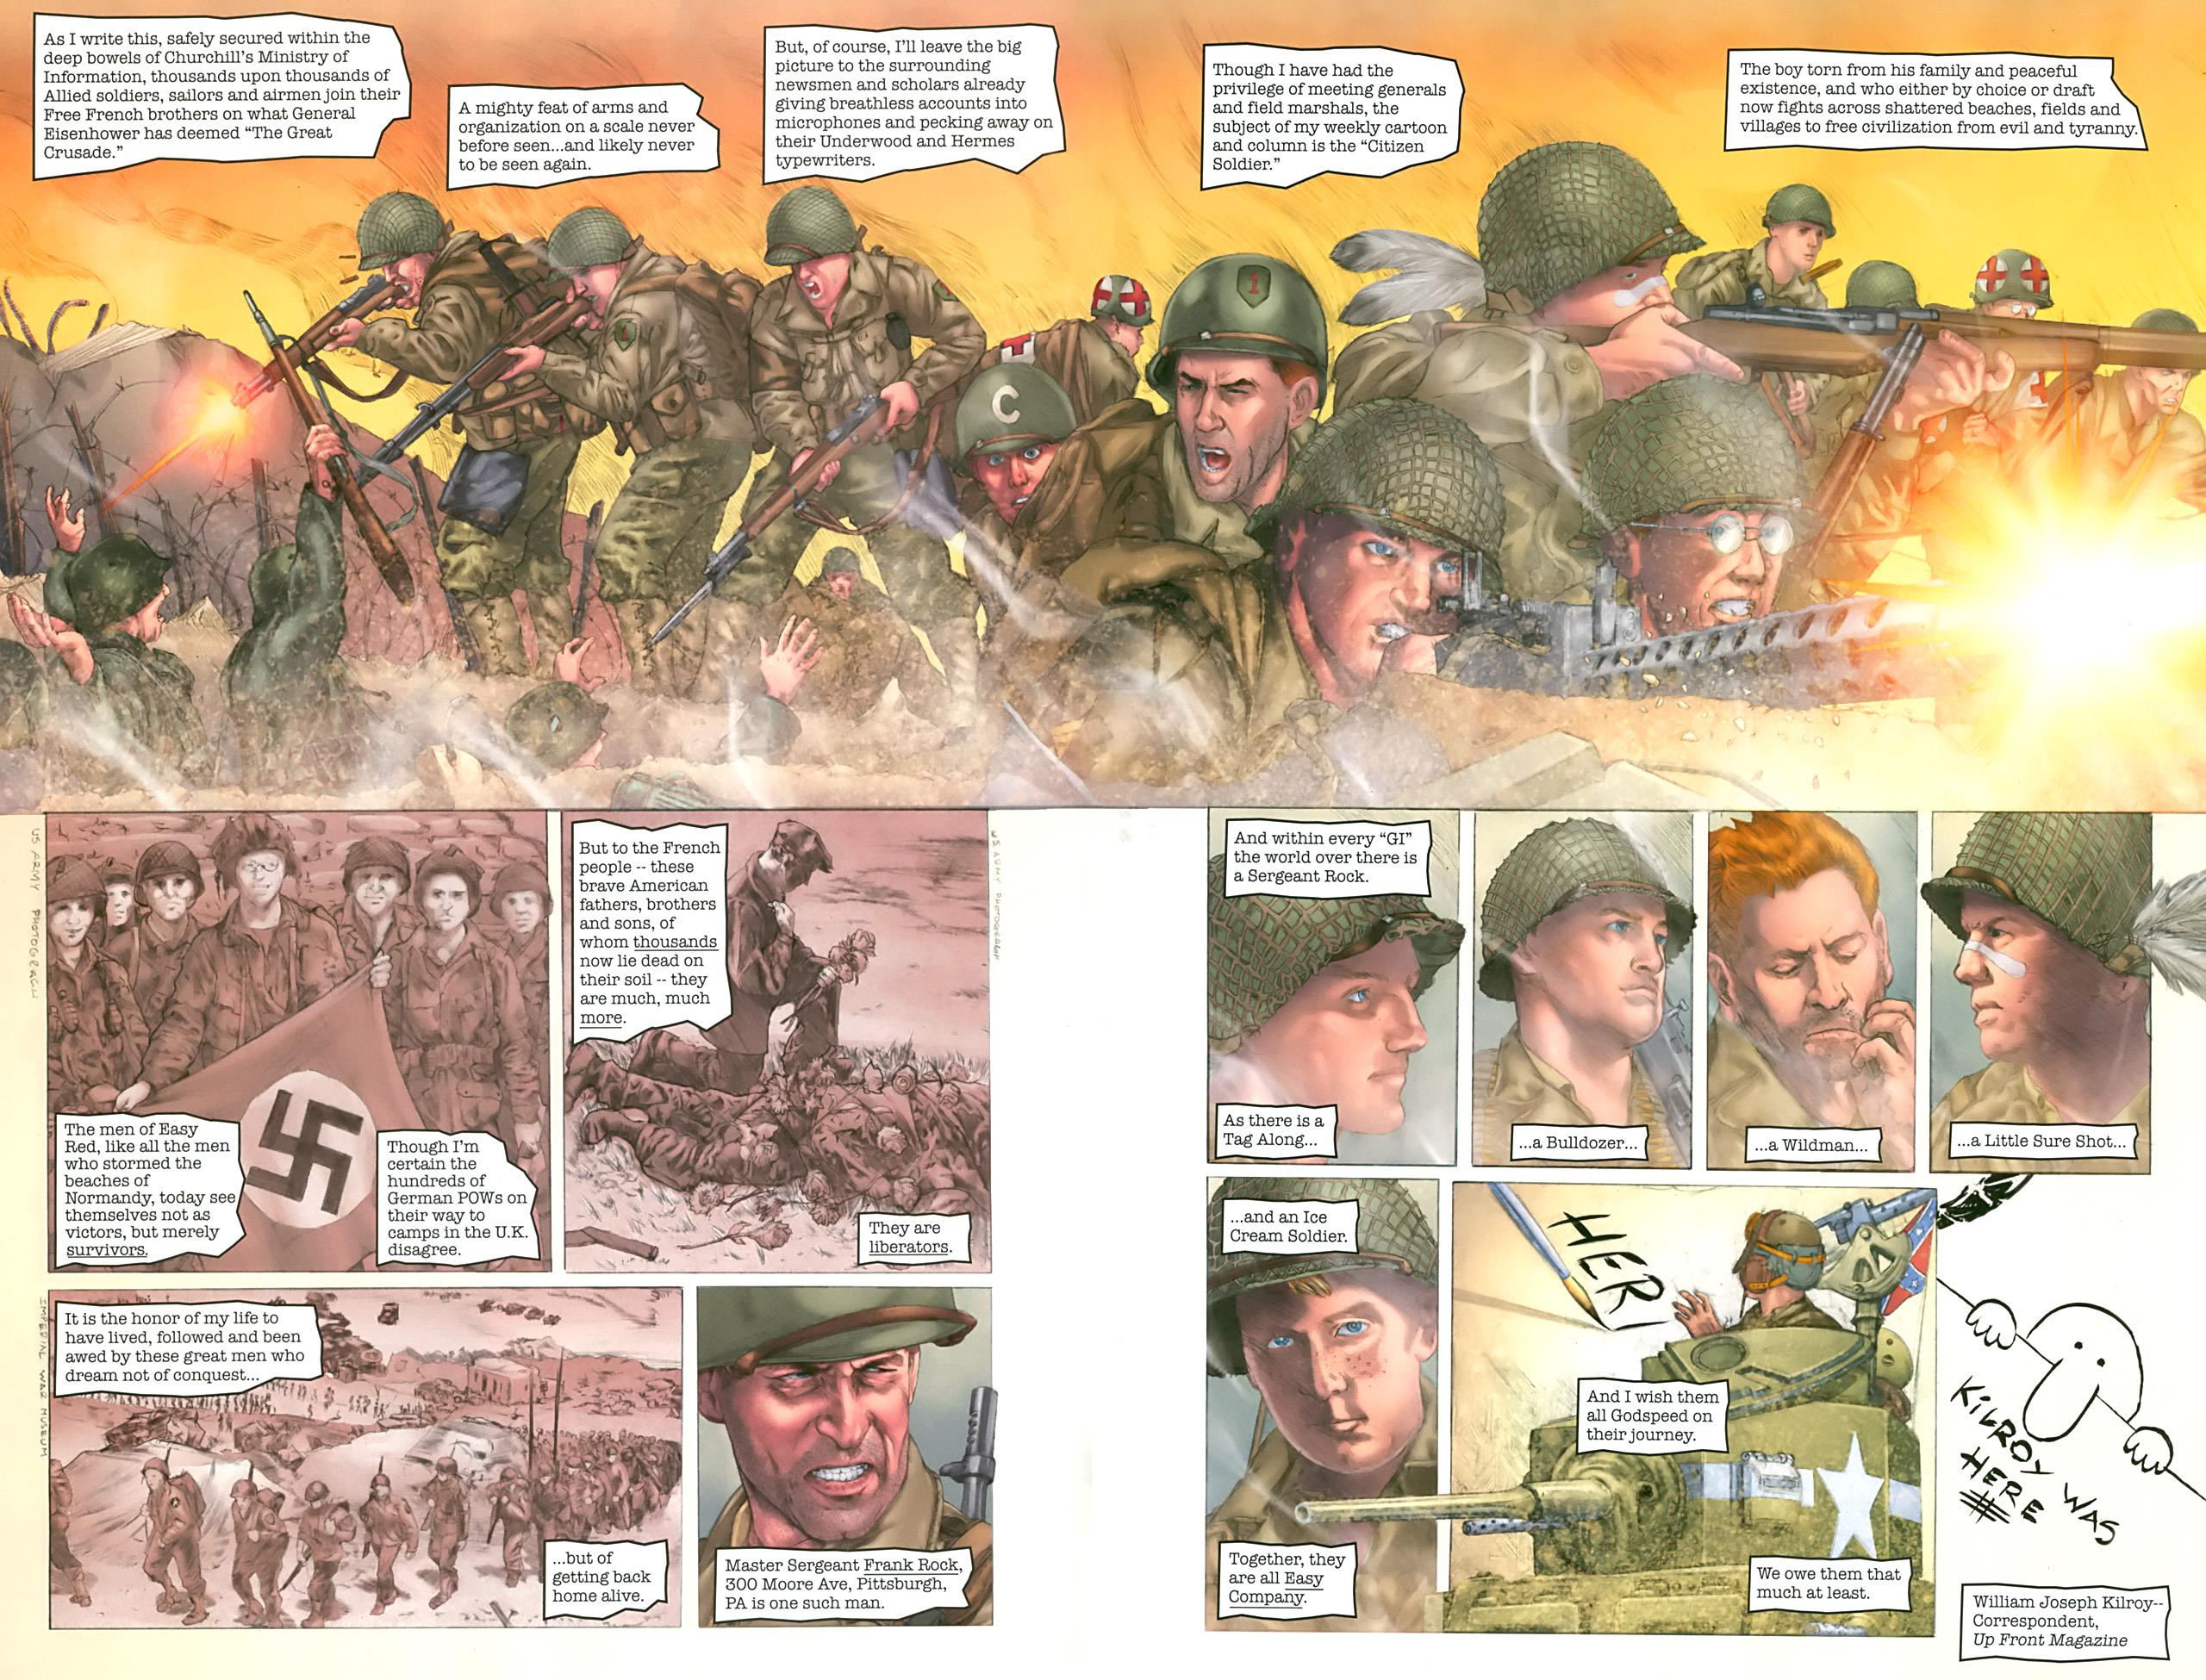 Sgt Rock The Lost Battalion review